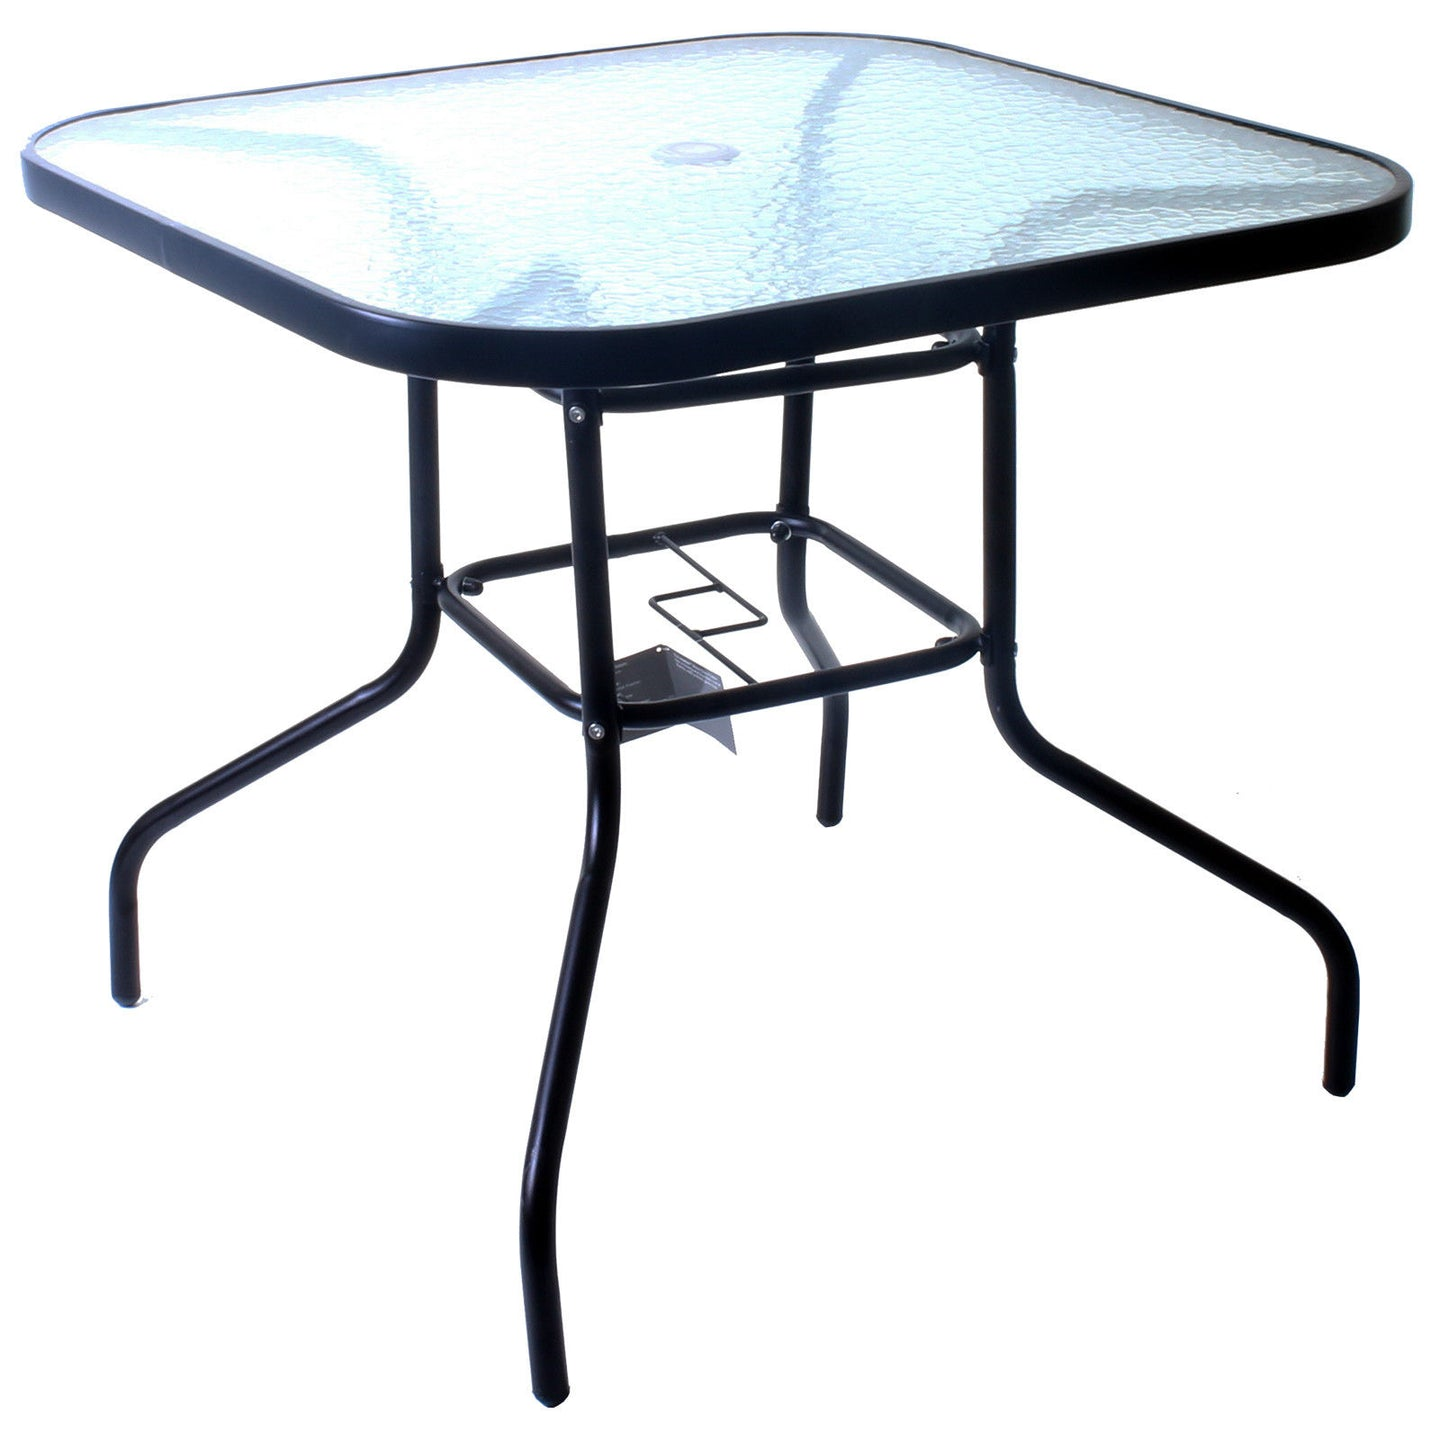 80cm Square Glass Table